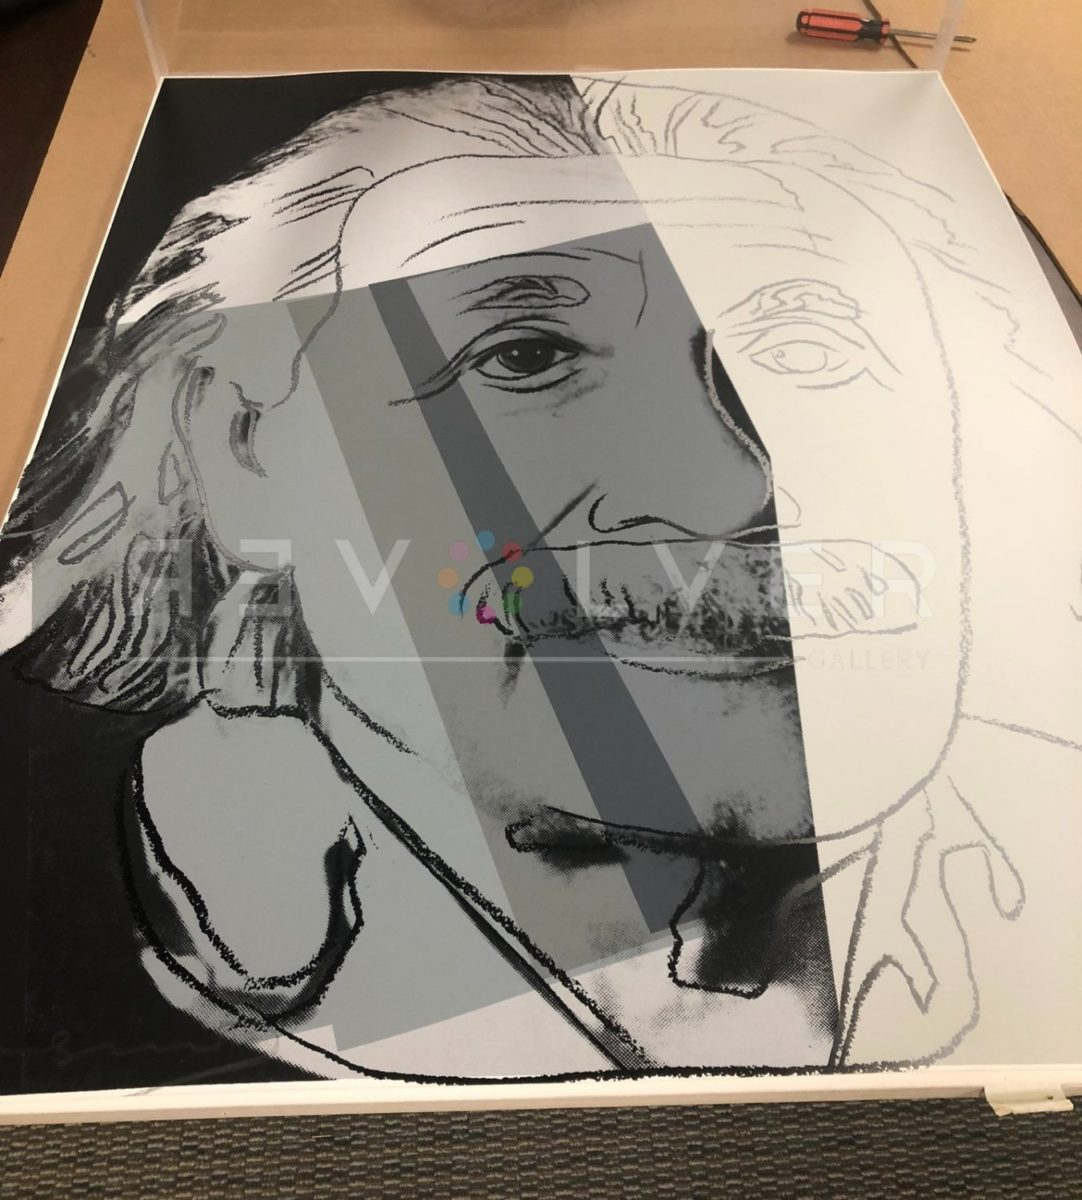 Andy Warhol Albert Einstein 229 screenprint out of frame and laying on a table.